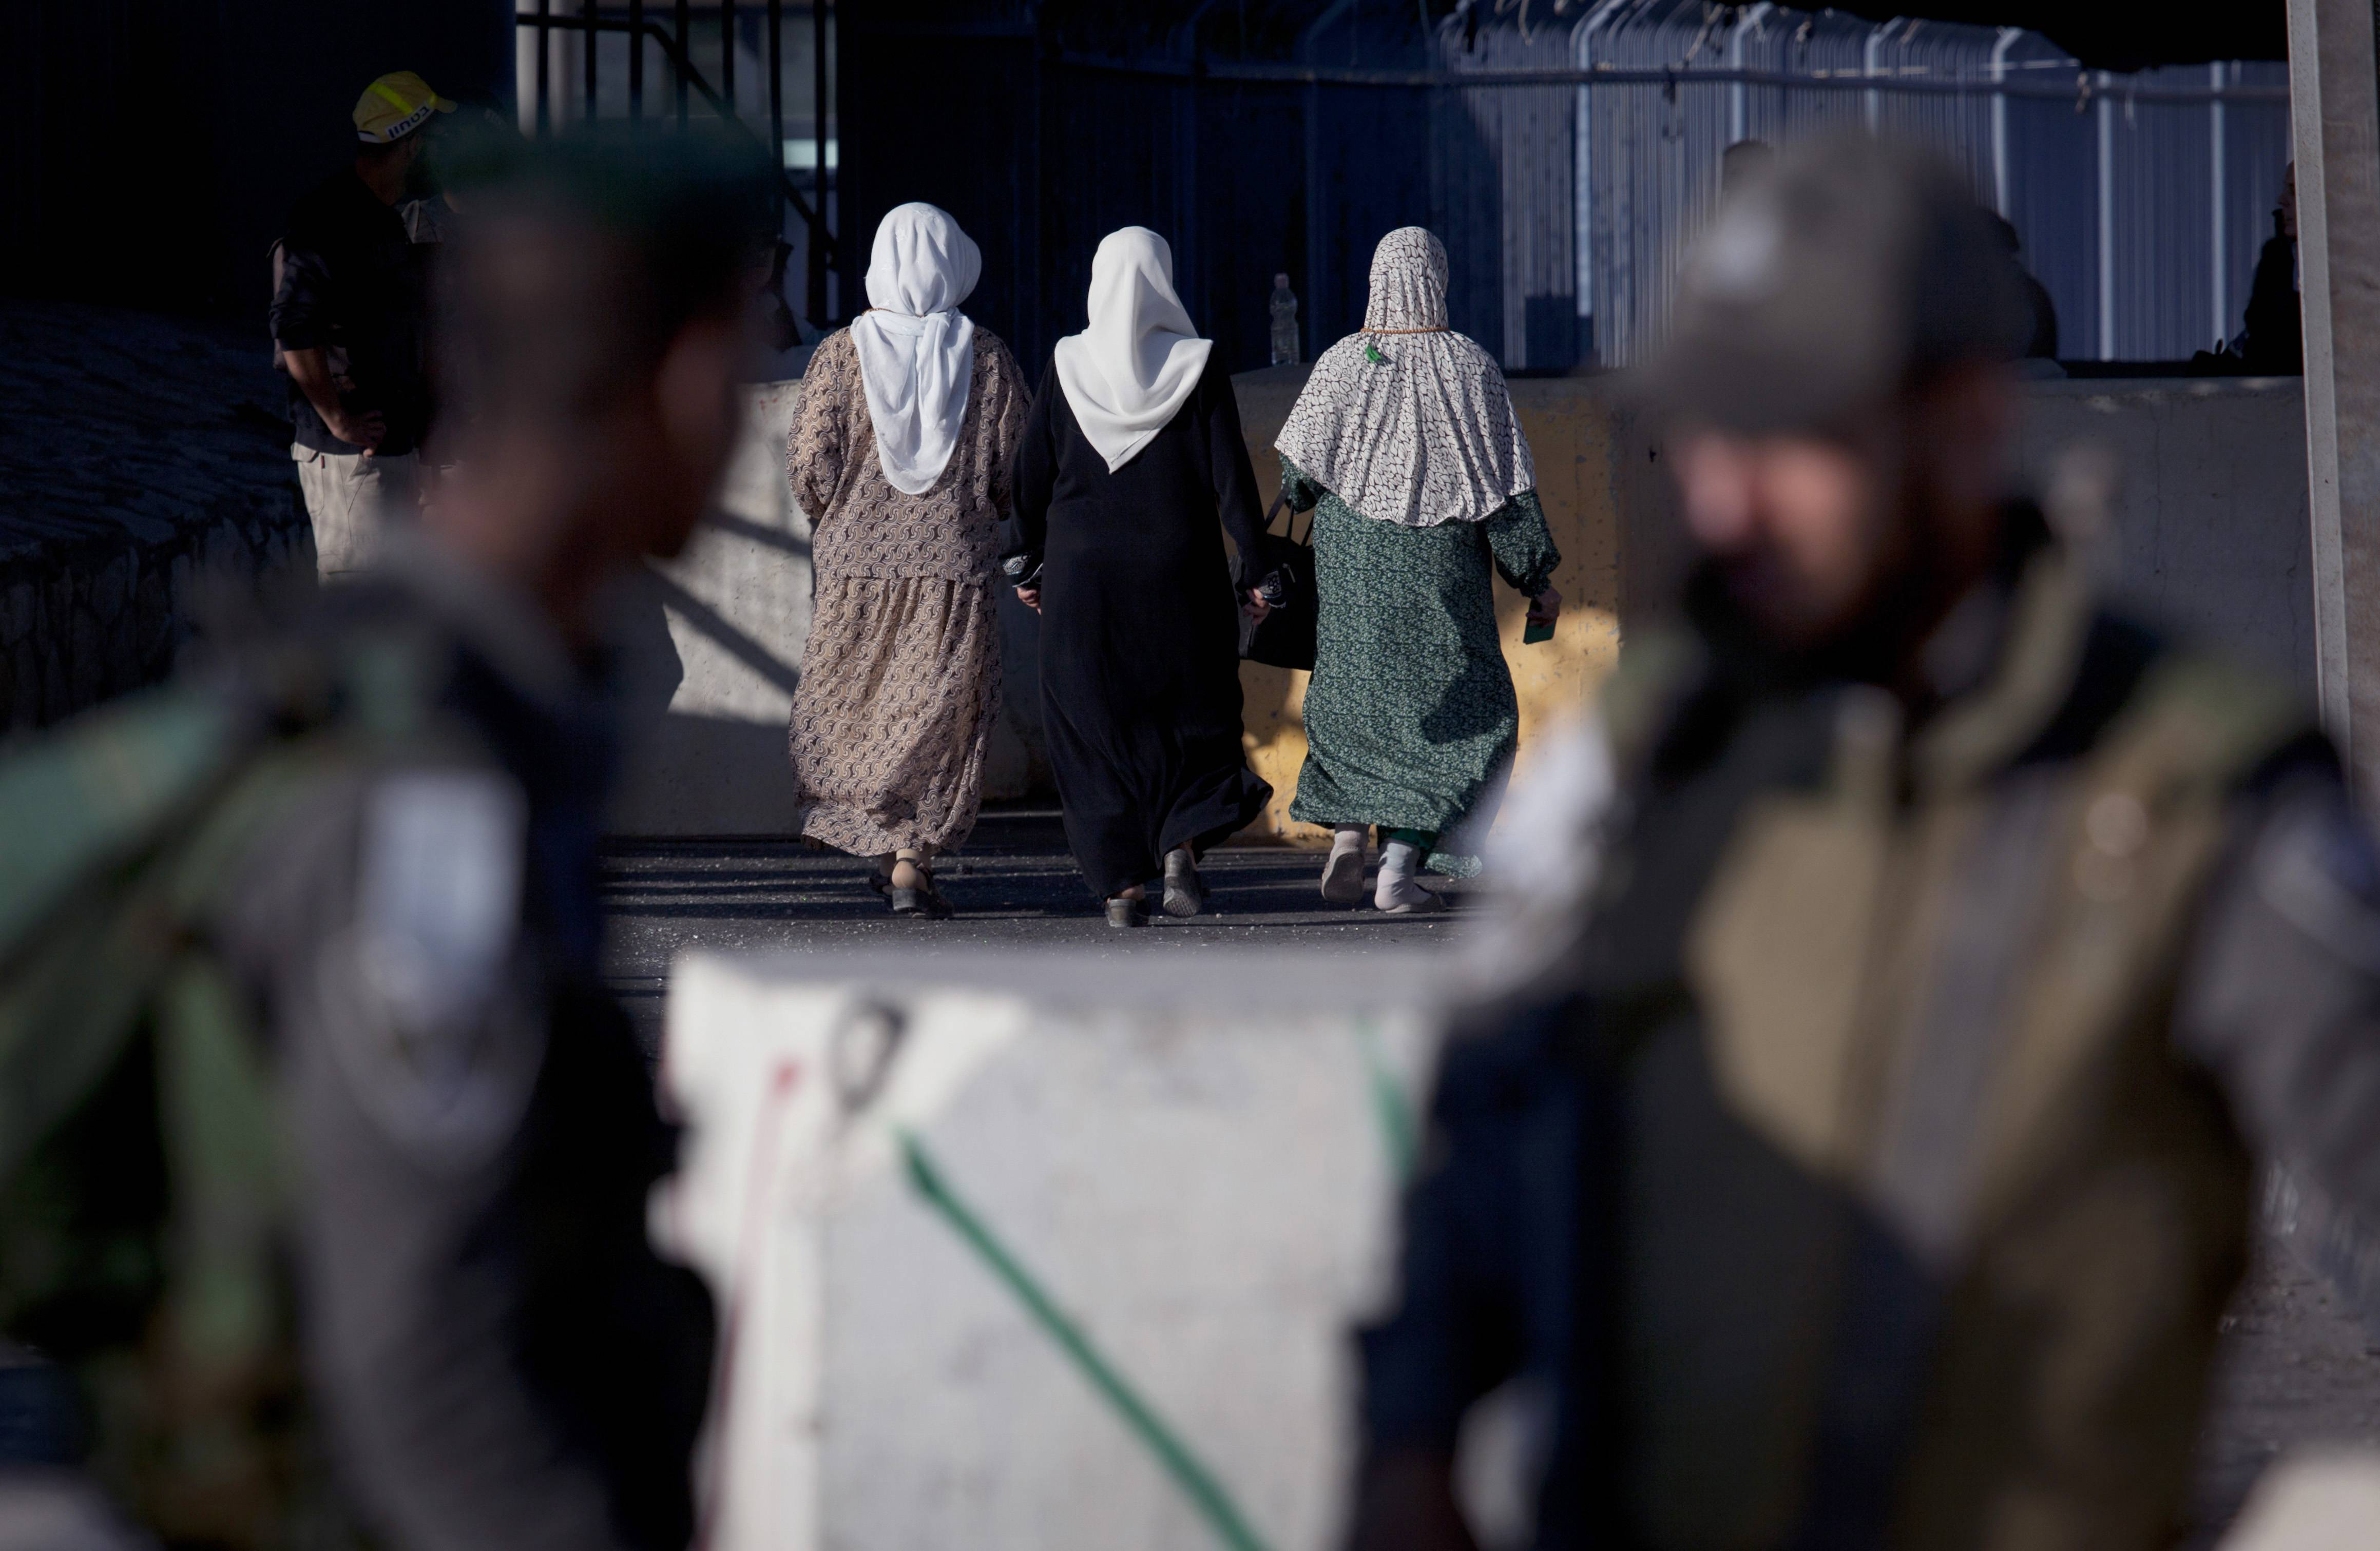 Palestinian women walk Friday through the Qalandia security checkpoint on their way to Jerusalem, behind two Israeli border guards officers, on the outskirts of the West Bank city of Ramallah.